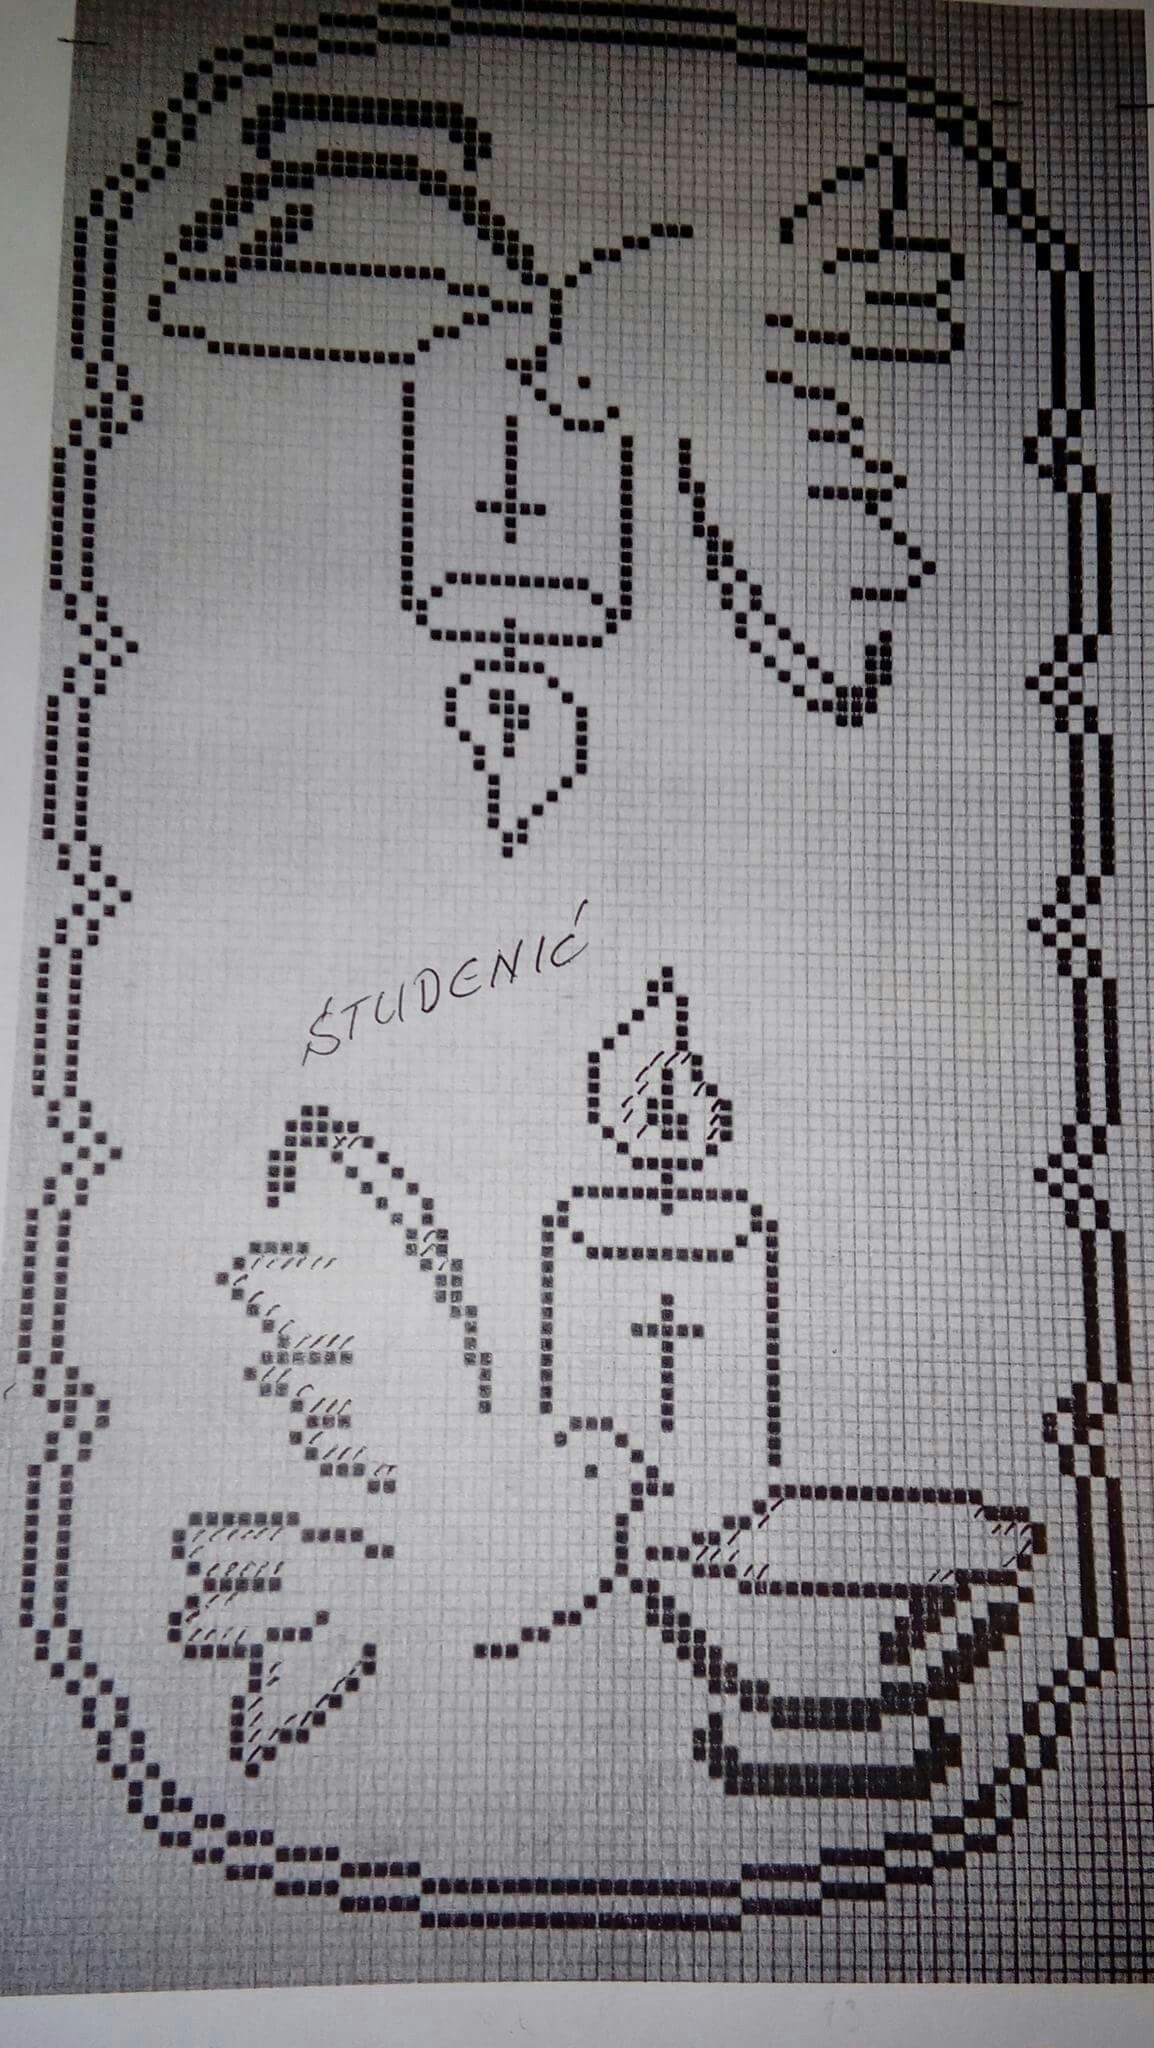 Pin Di Teresa Acunzo Su Fantasia Filet Crochet Cross Stitch Kits